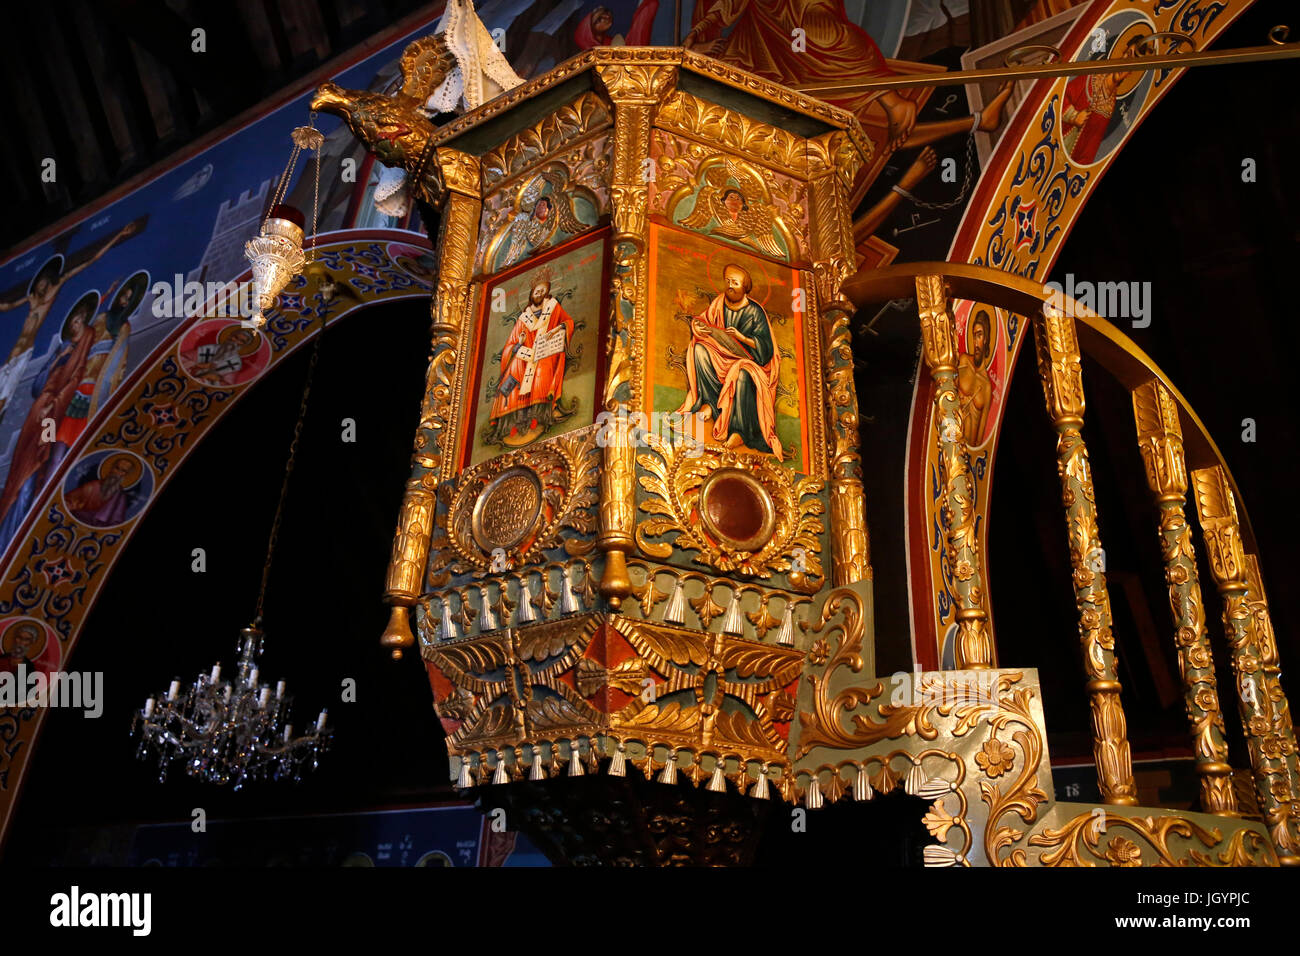 Troodithissa monastery church pulpit. Cyprus. - Stock Image